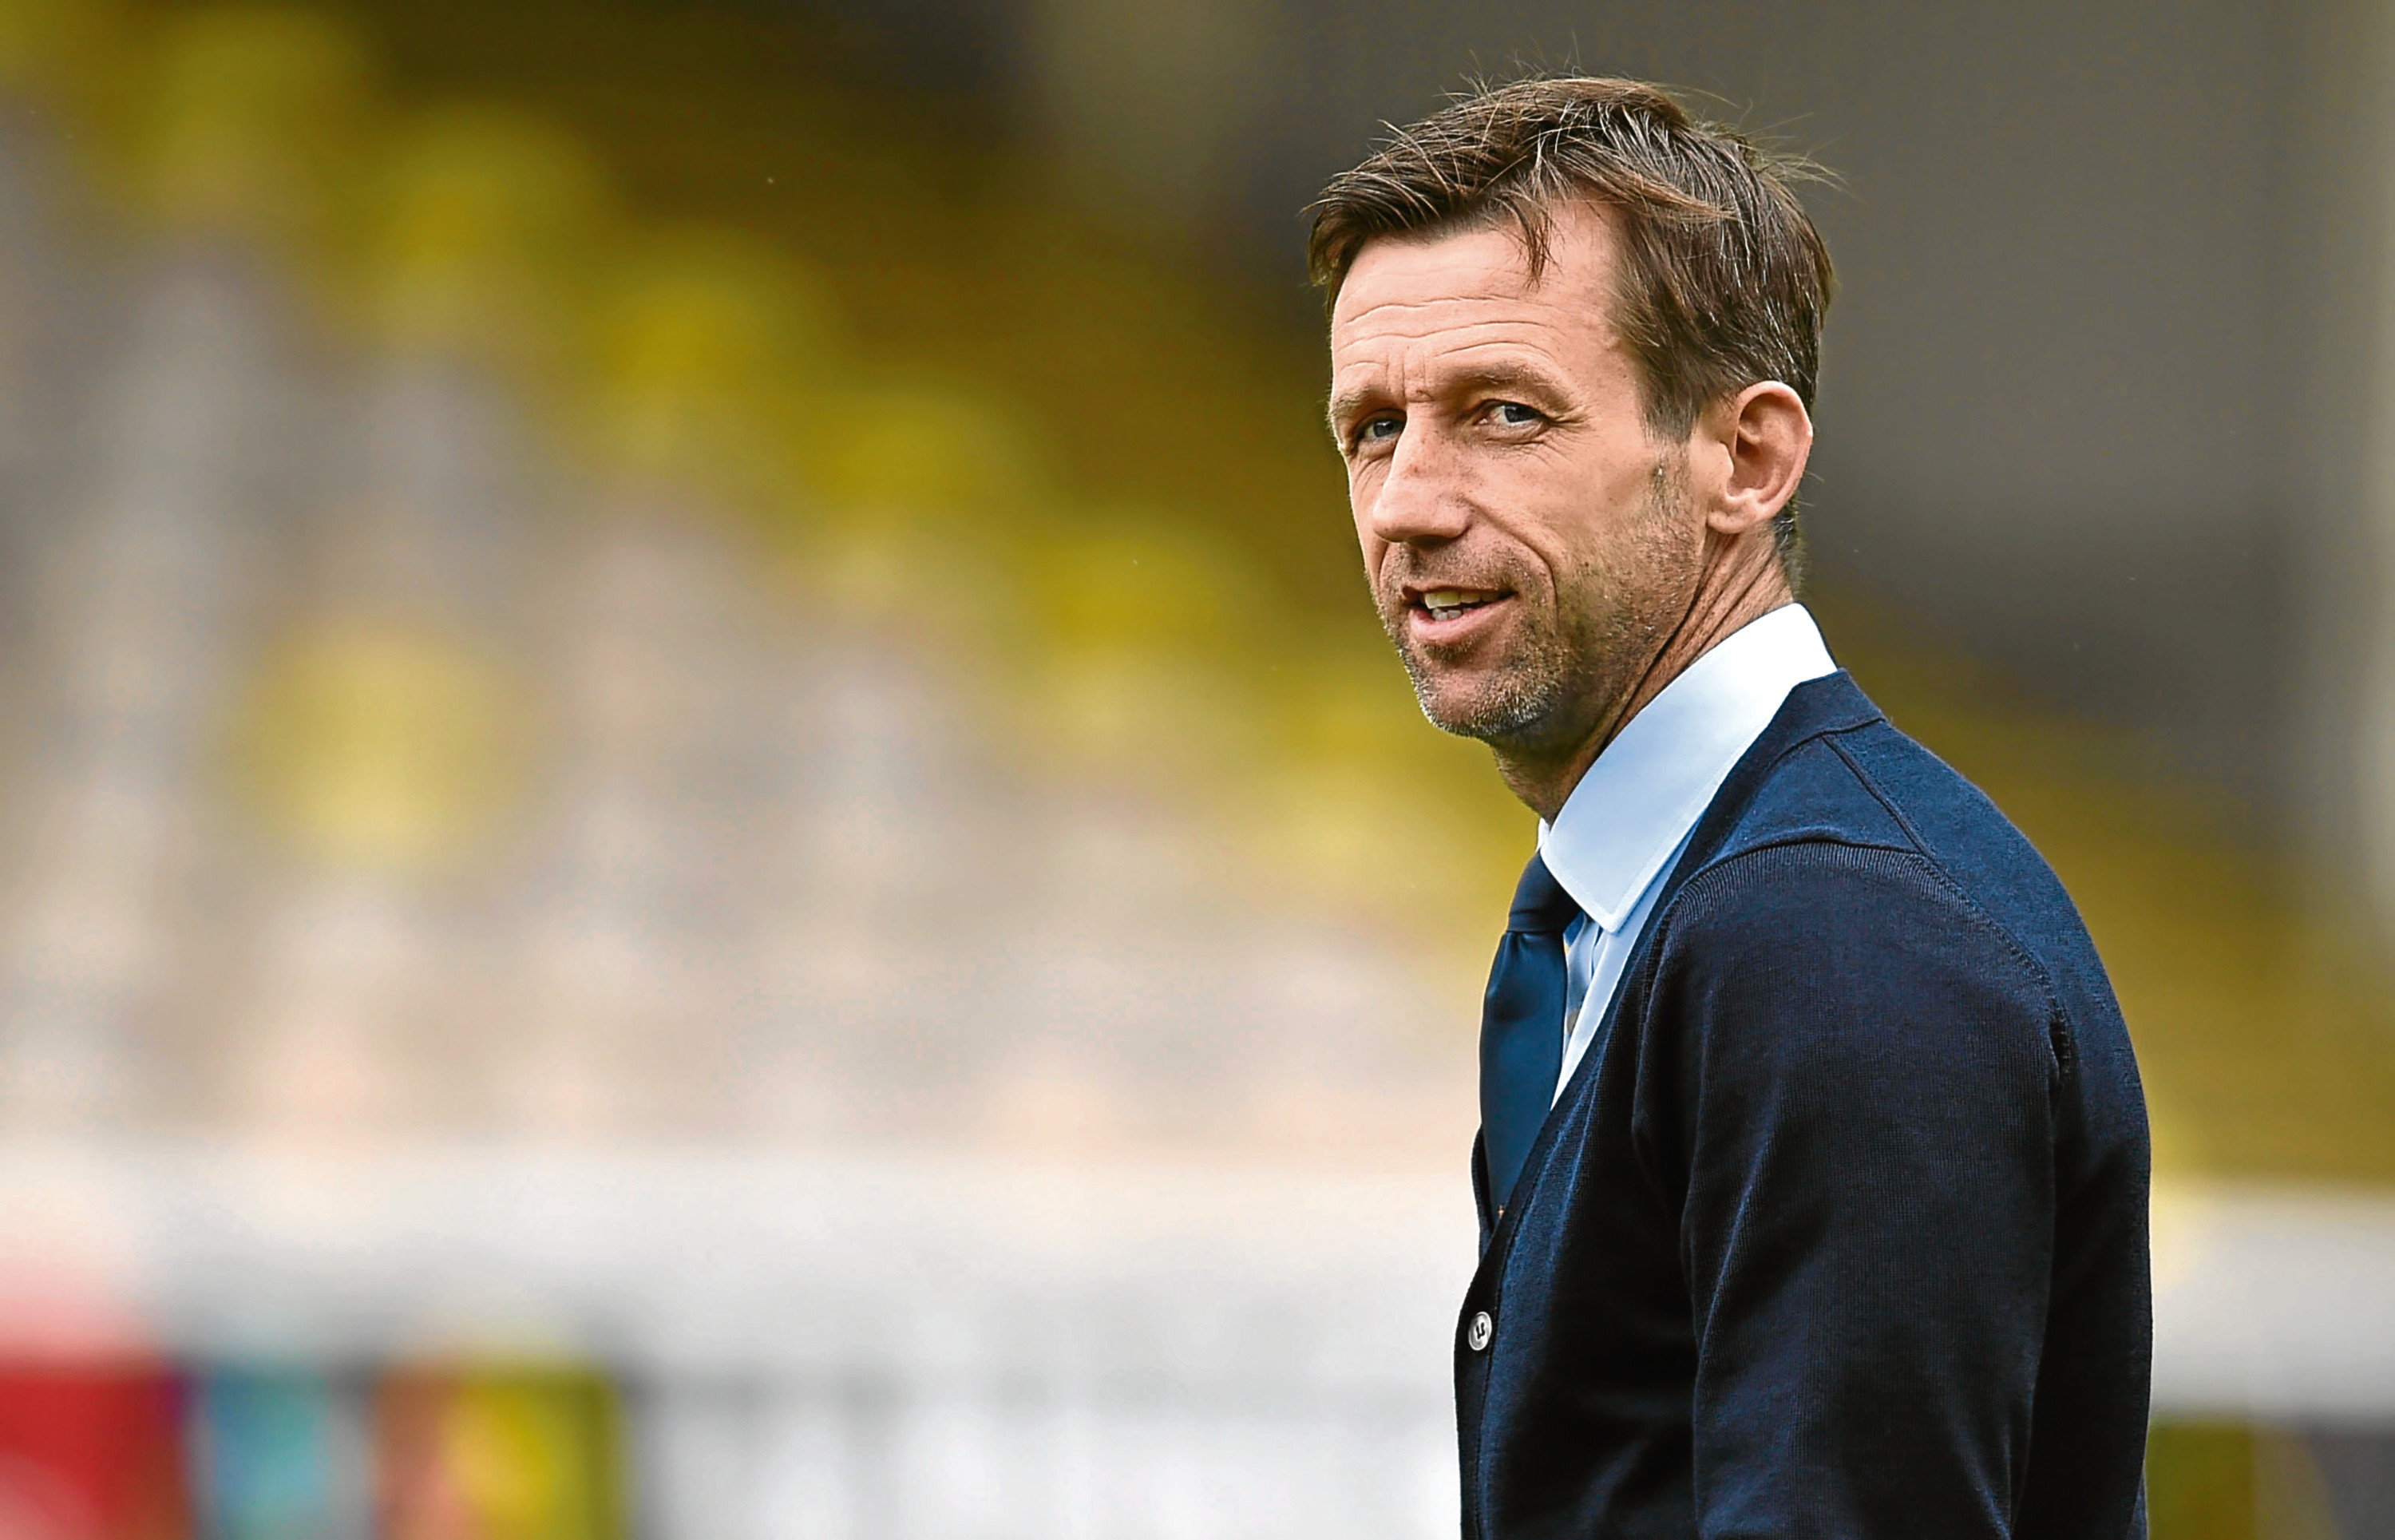 Neil McCann has made subtle changes to the way the team operate.